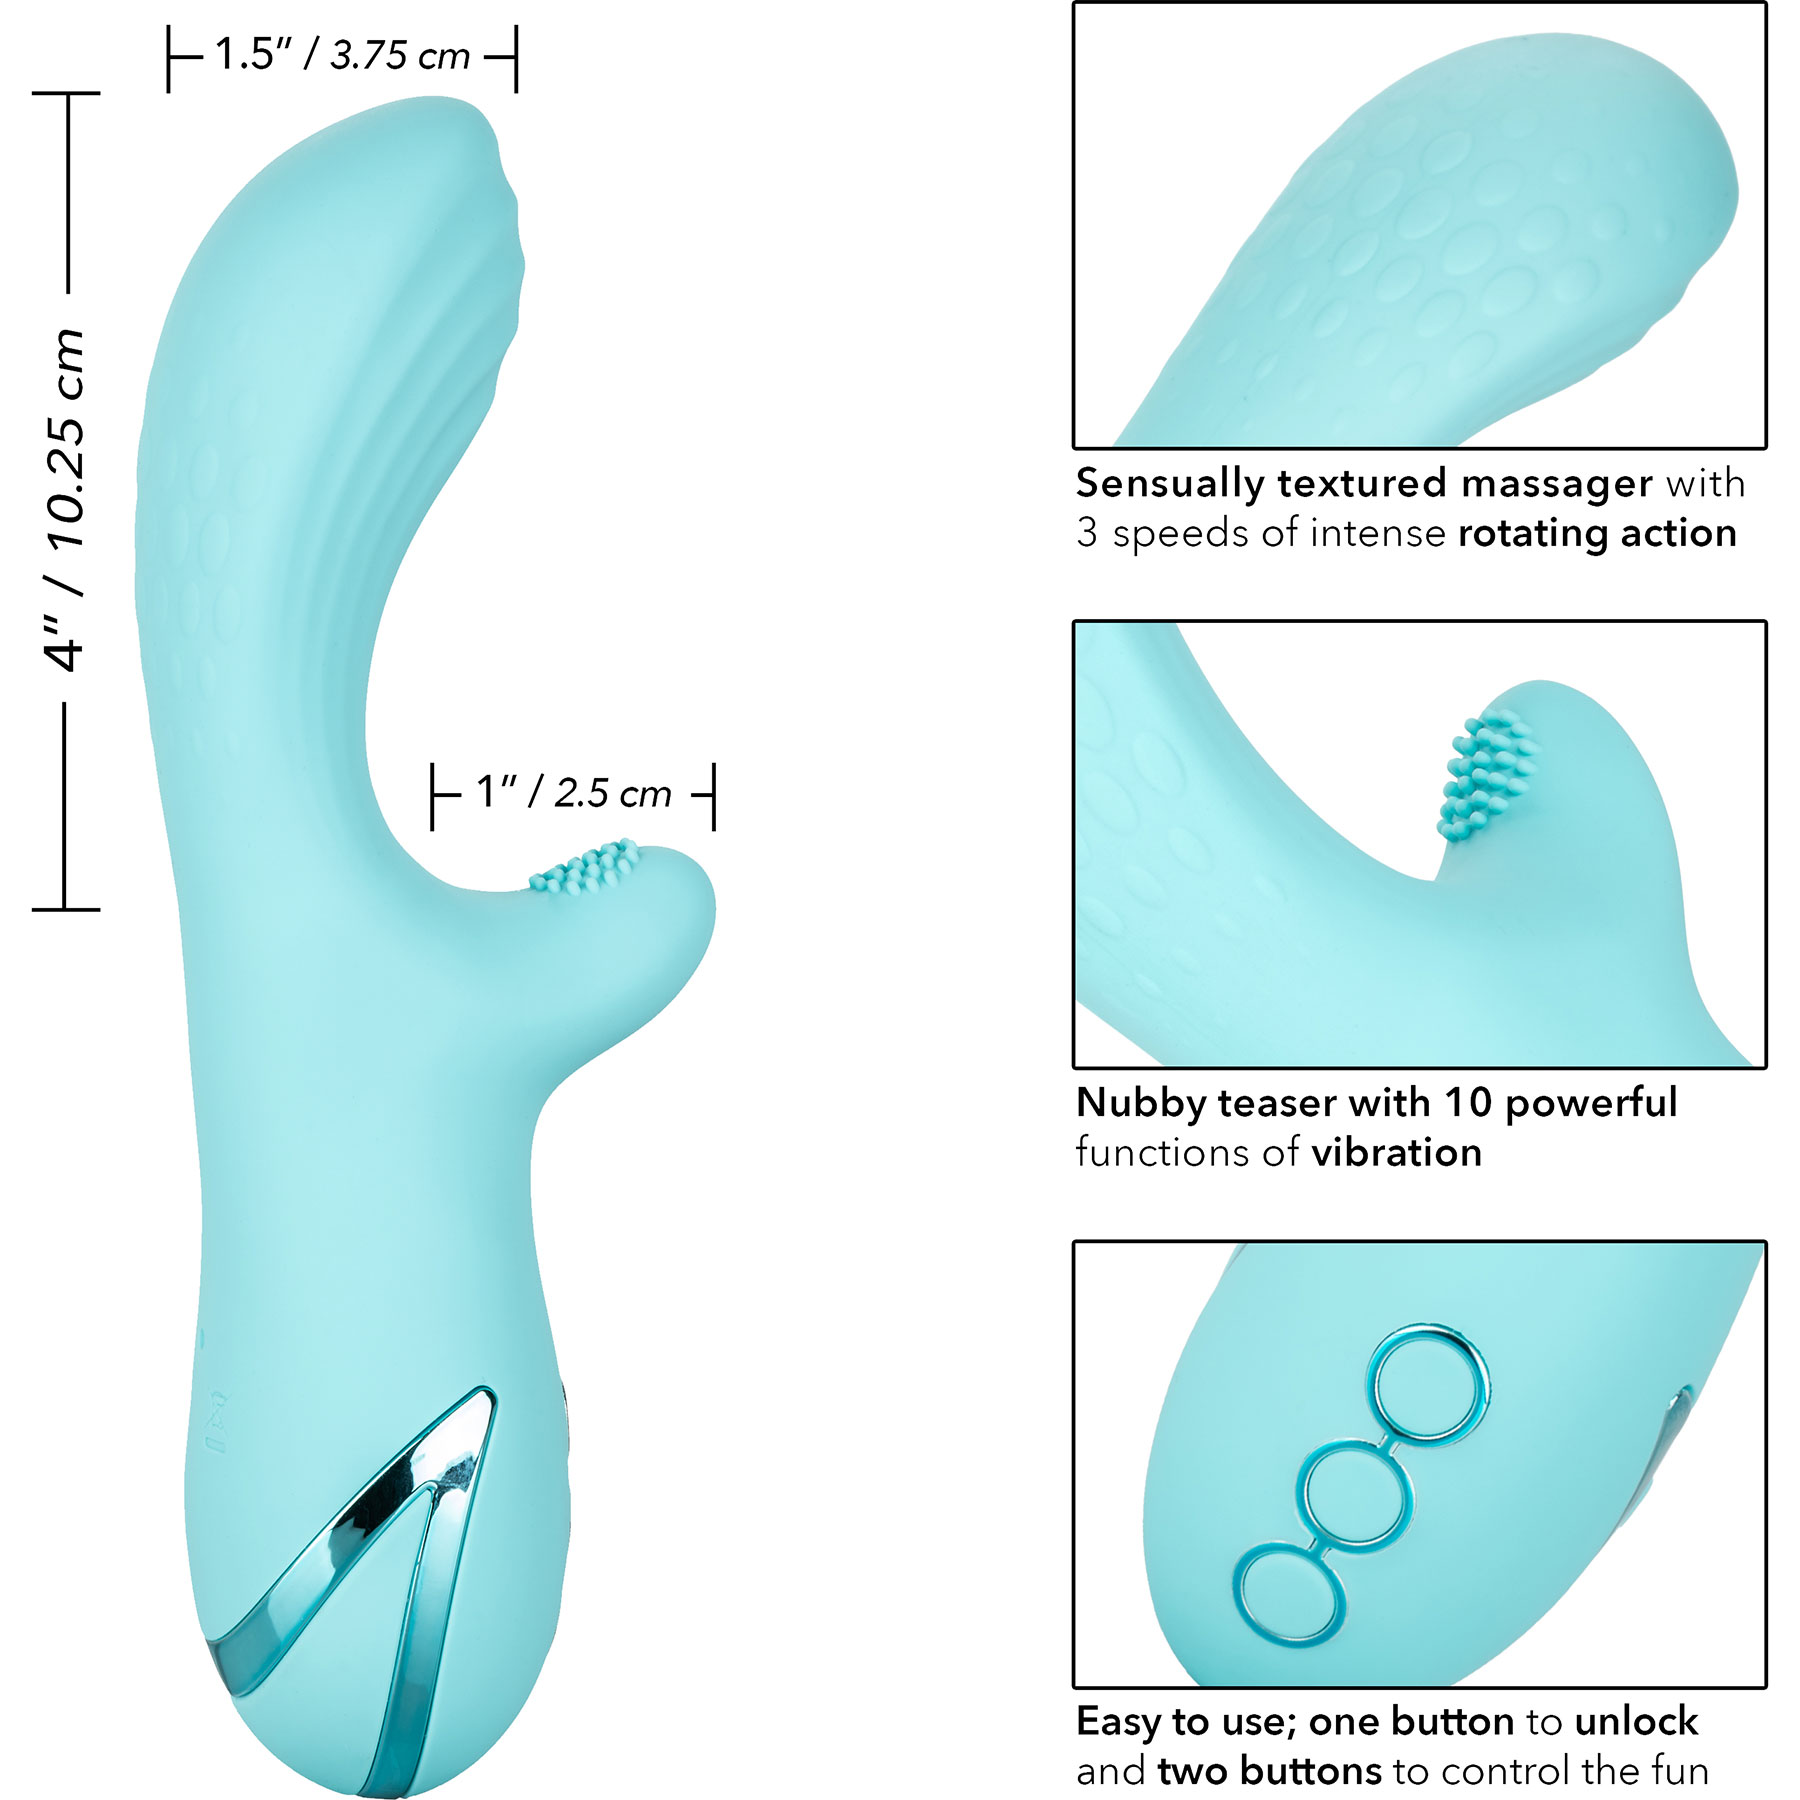 California Dreaming Catalina Climaxer Rabbit Style Silicone Vibrator - Measurements